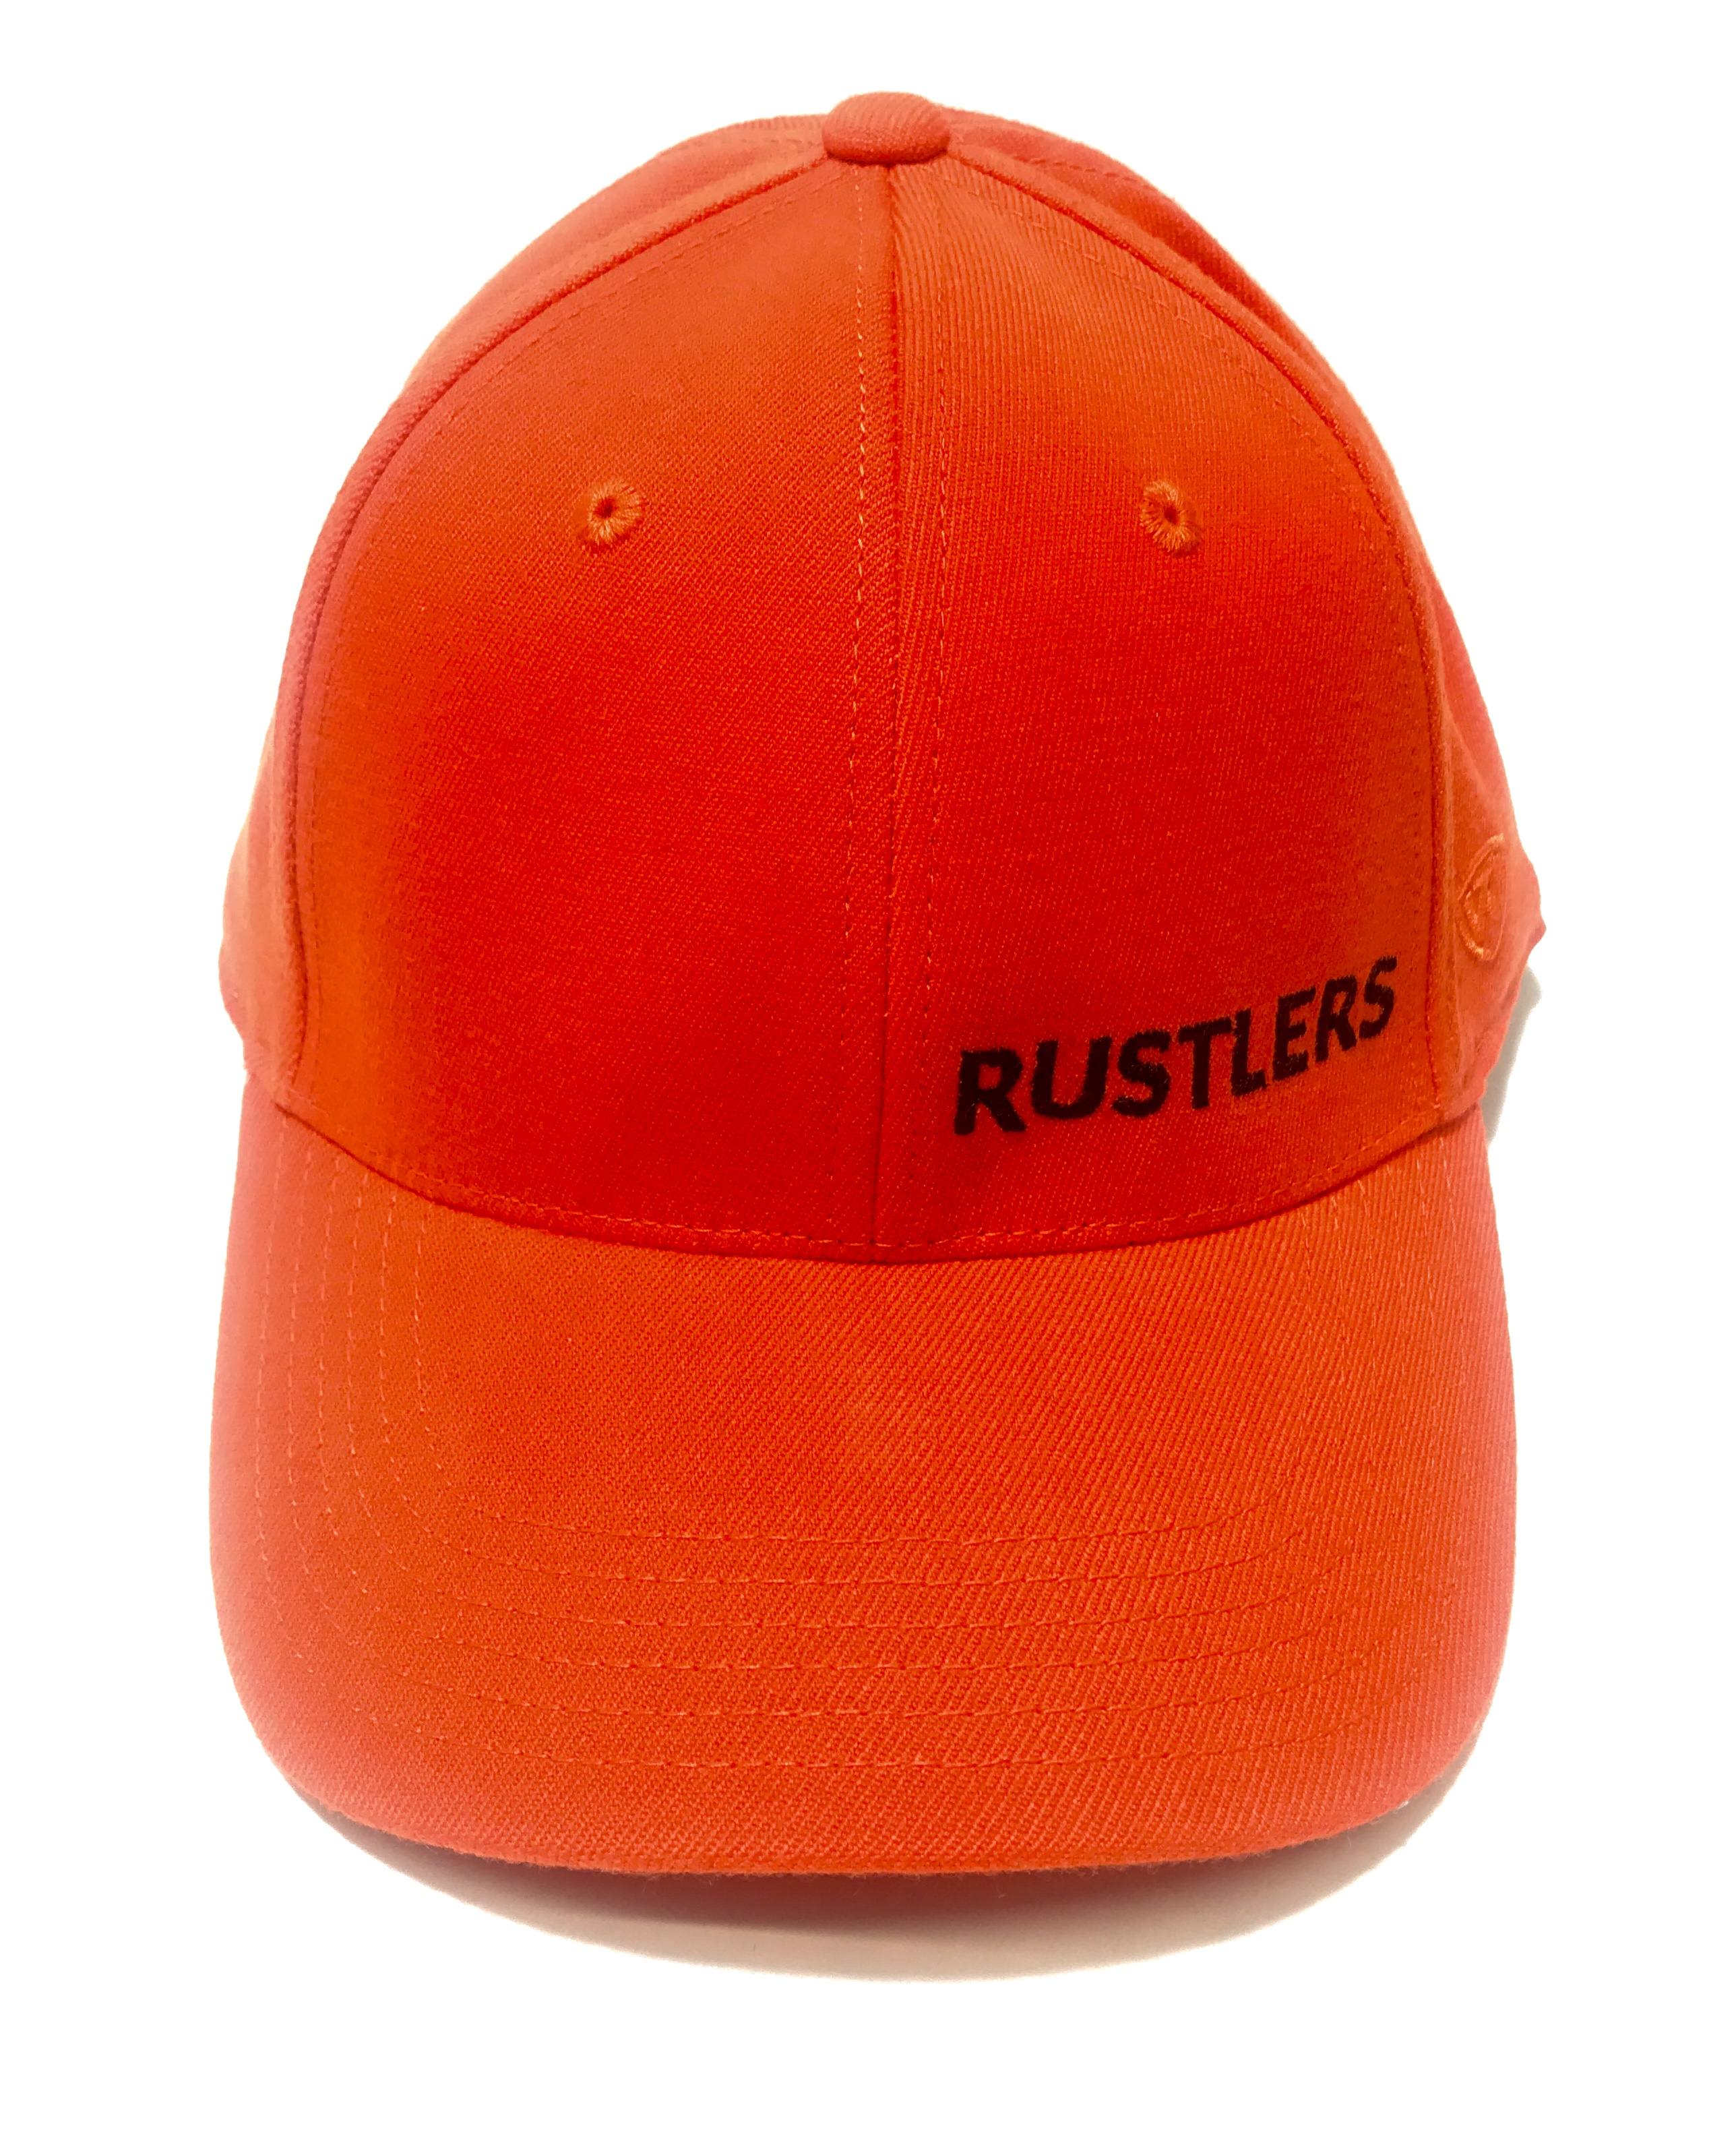 Orange CW Rustlers Baseball Cap